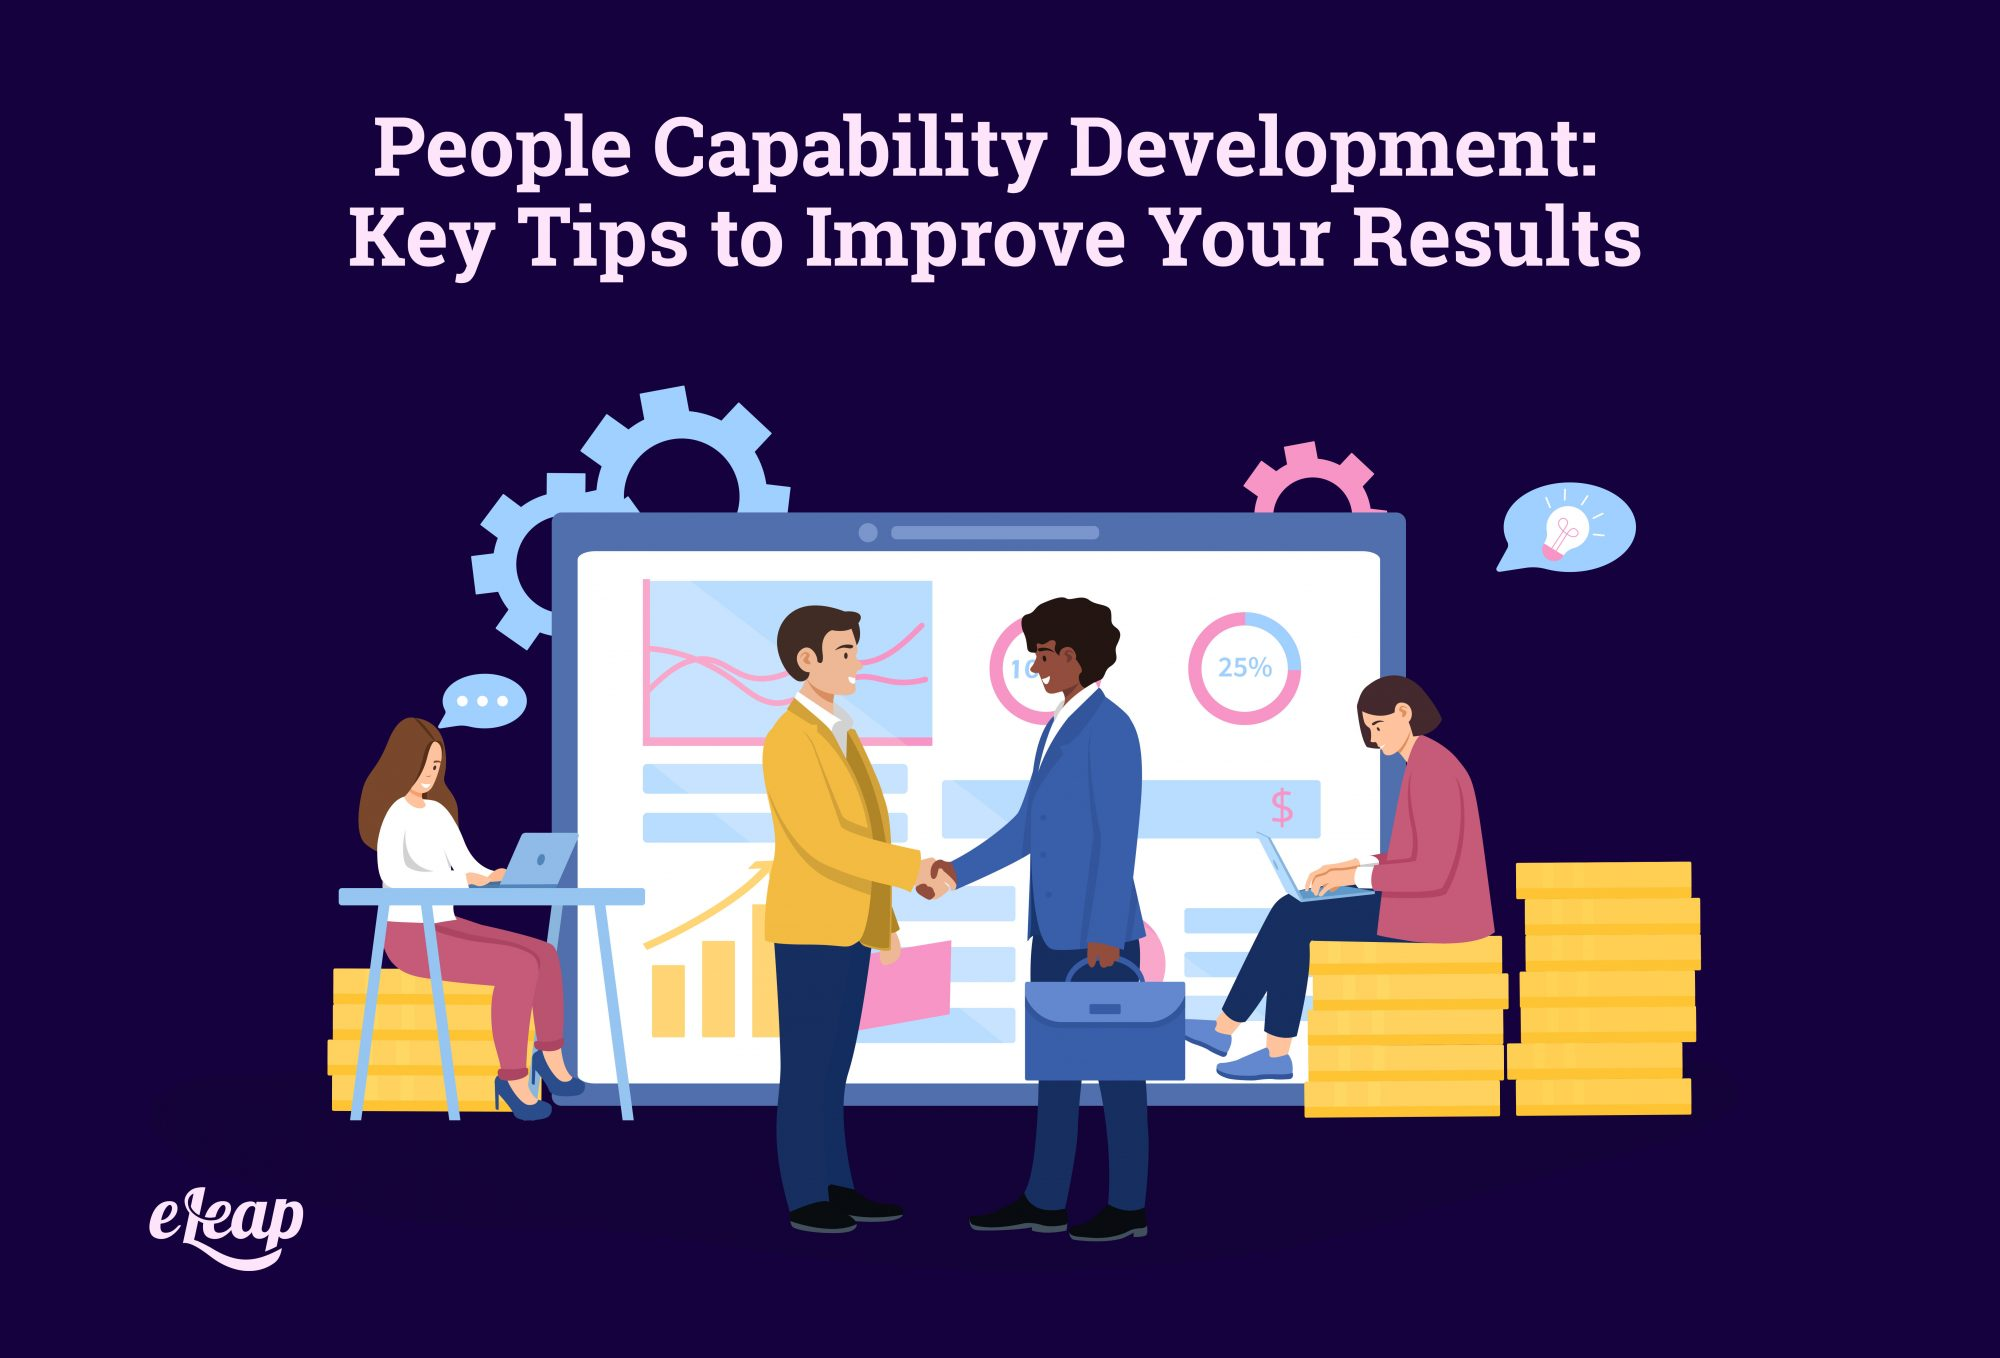 People Capability Development: Key Tips to Improve Your Results